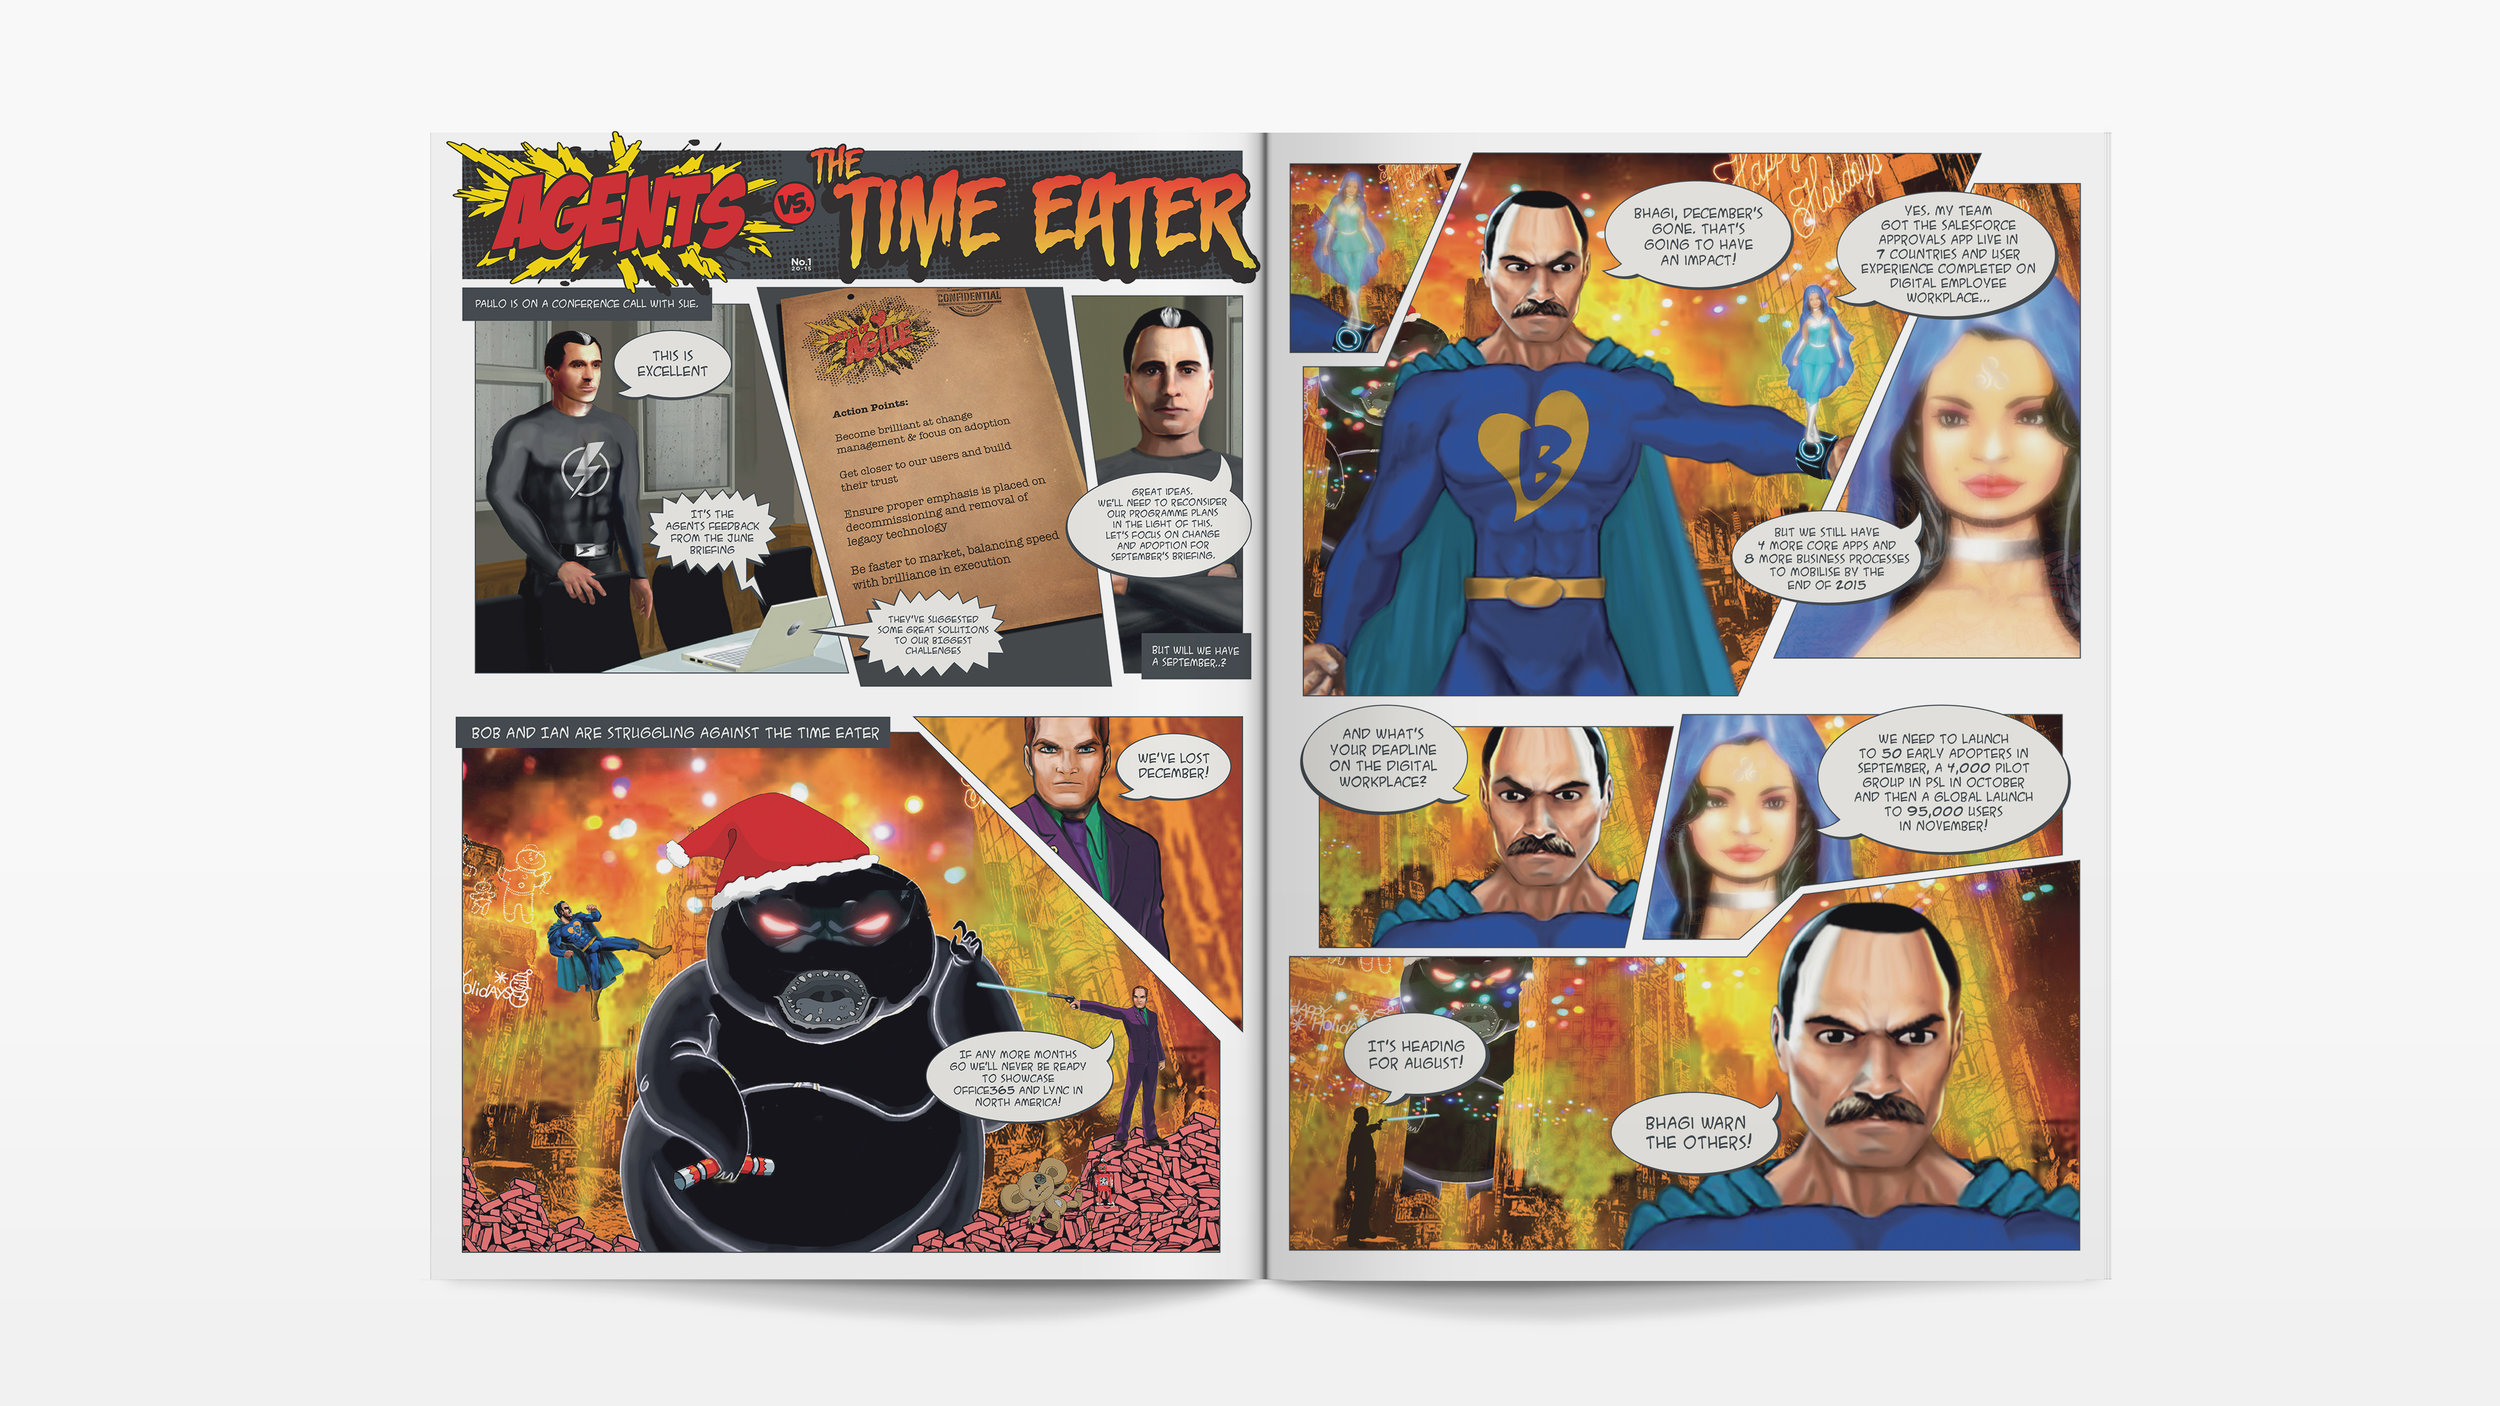 Brand_republica_unilever_internal_campaign_comic_book_design_spread_01.jpg